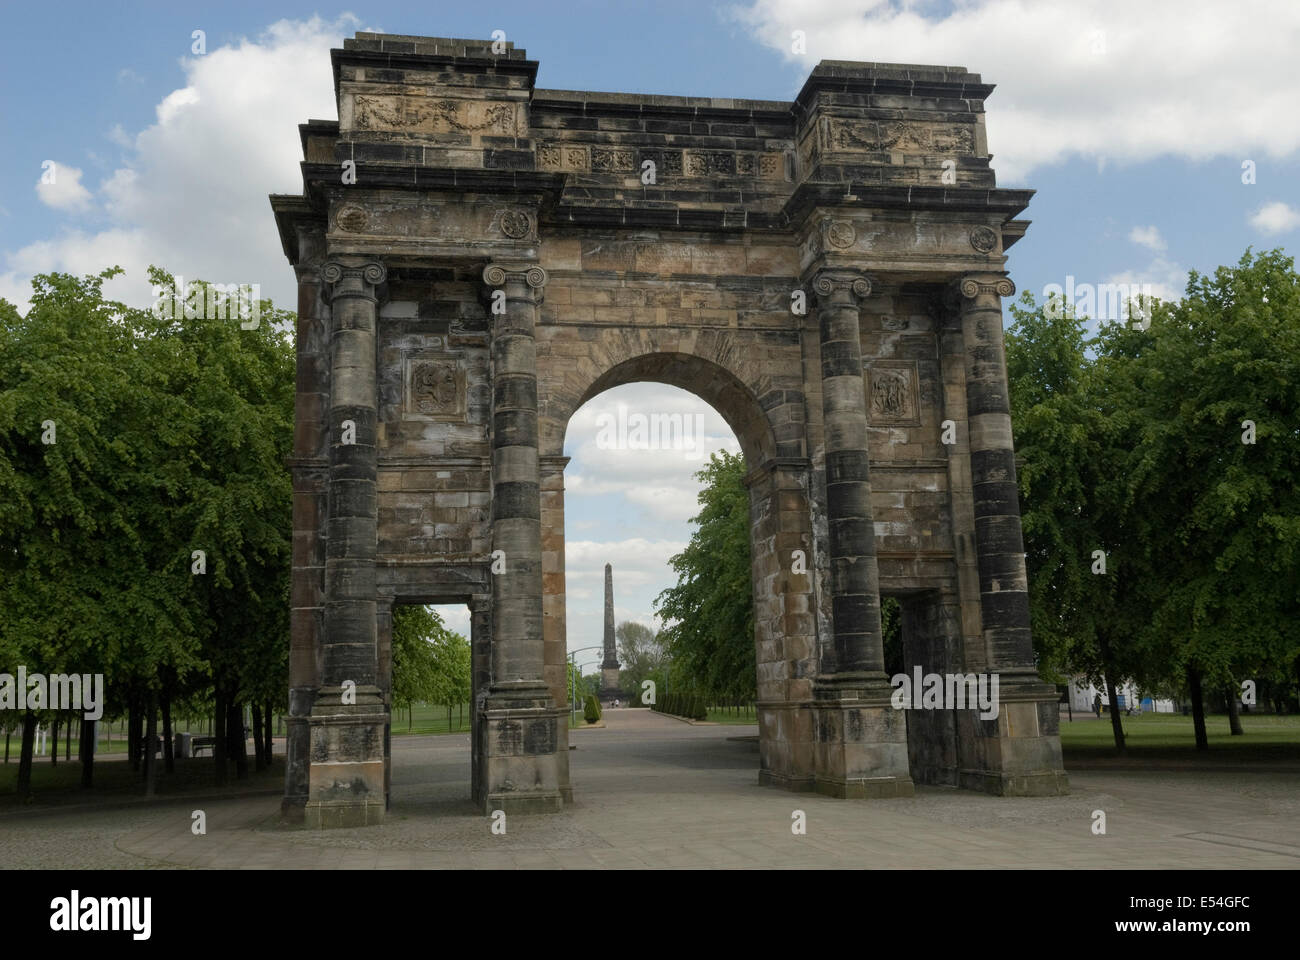 The MacLennan Arch at the entrance to  Glasgow Green - Stock Image